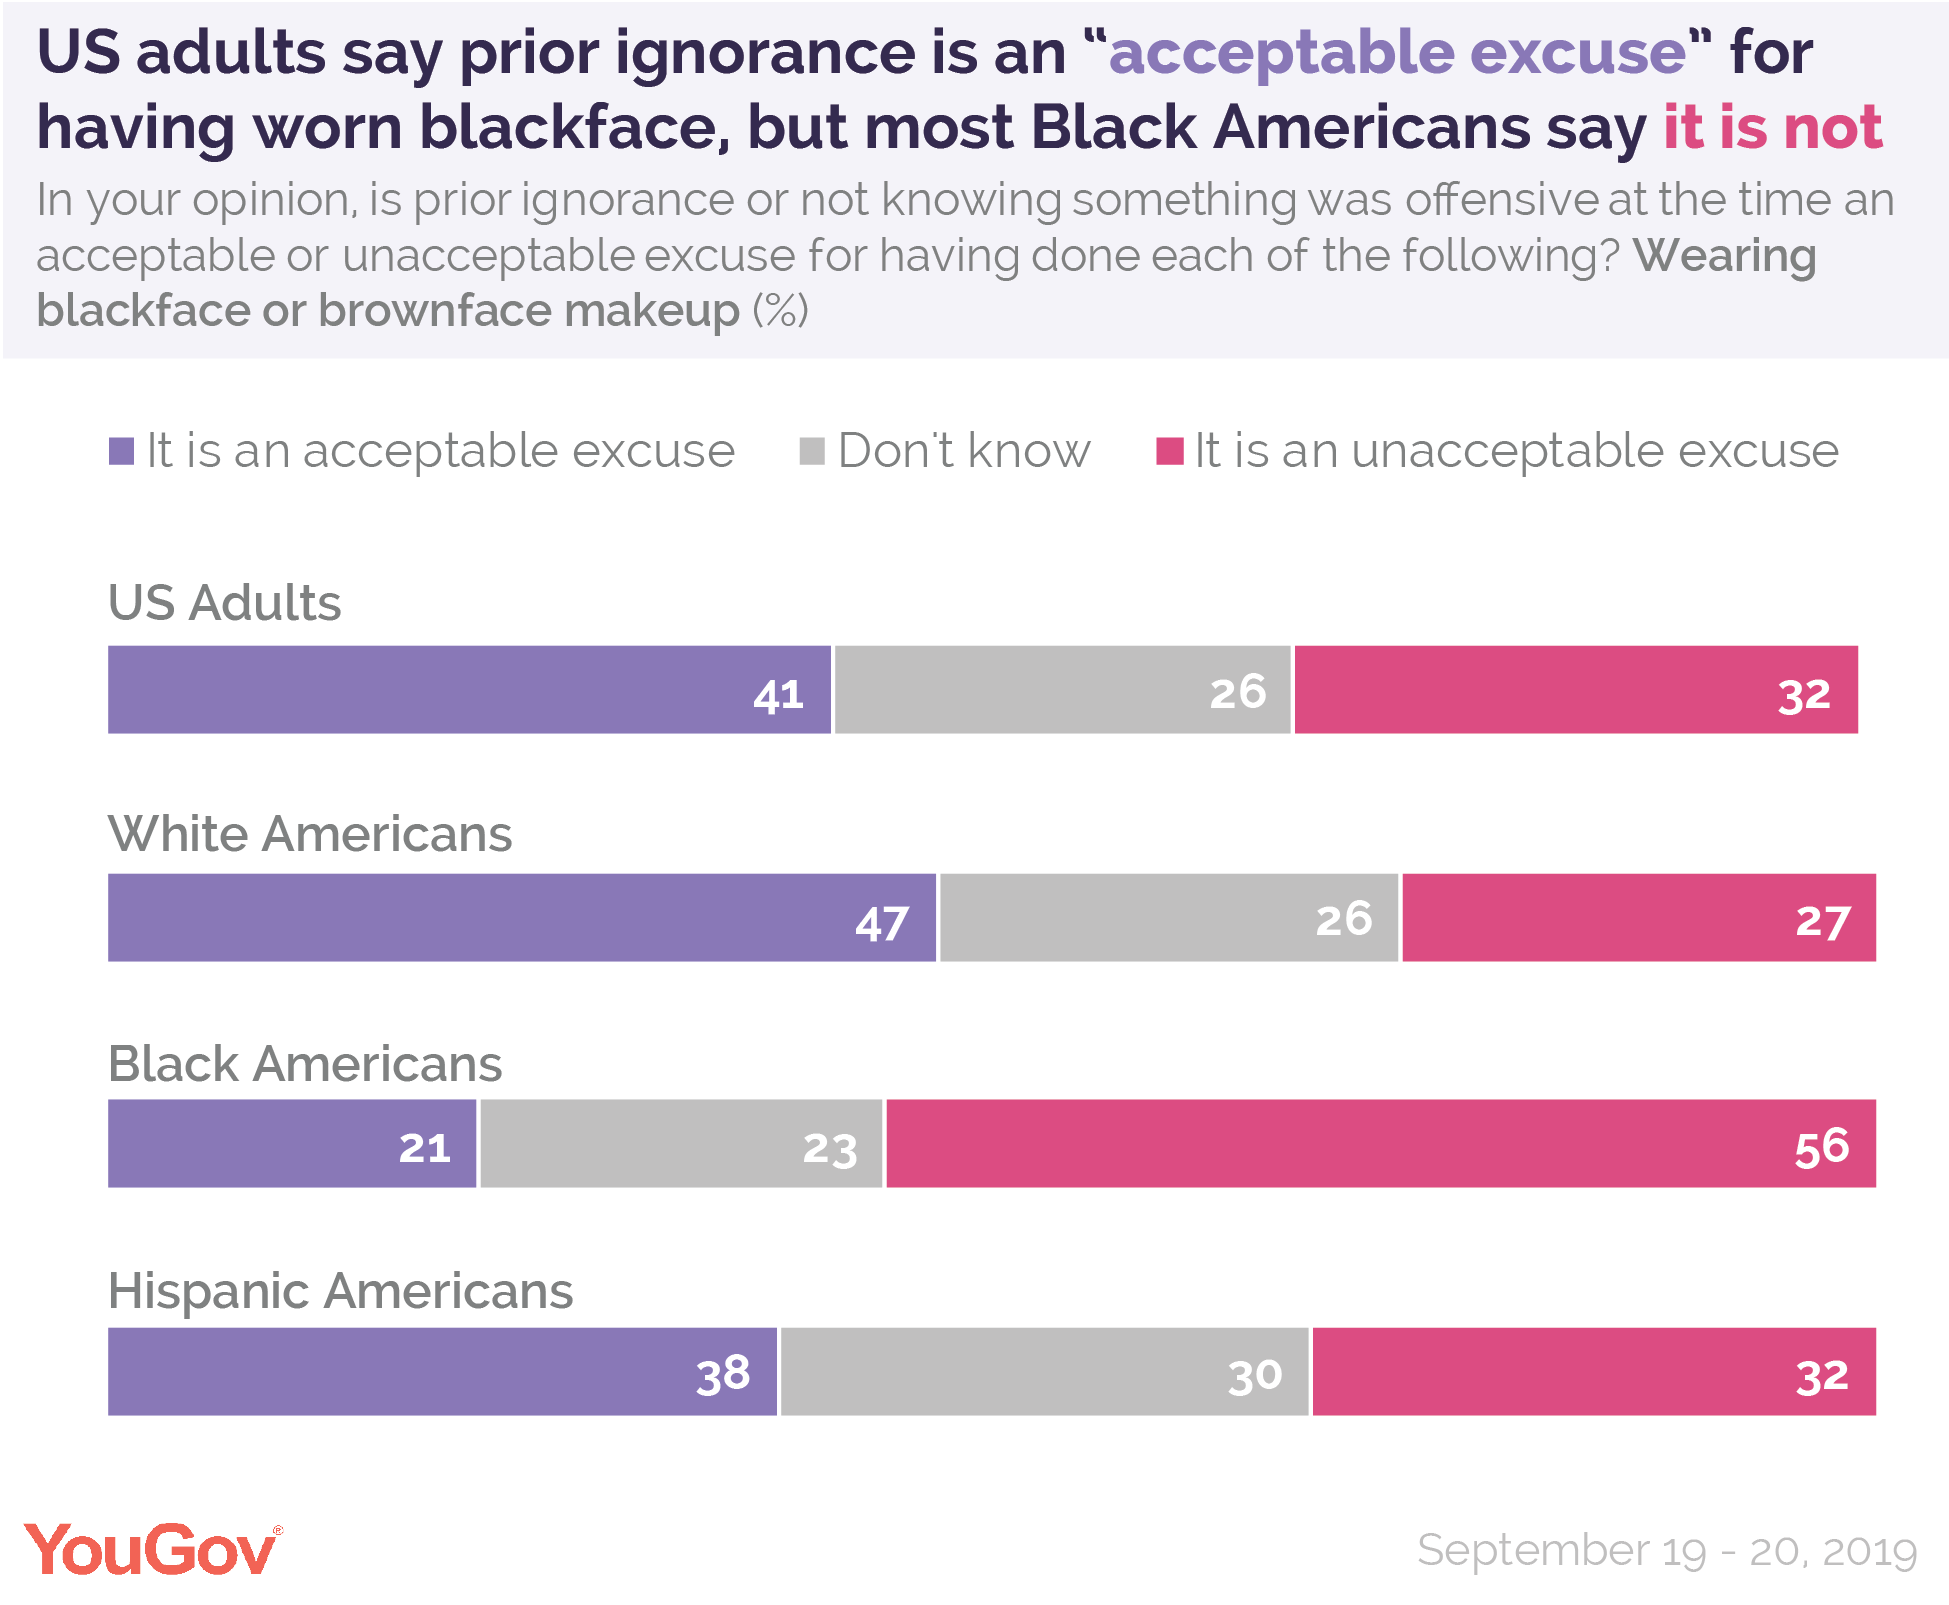 US adults overall say prior ignorance is an acceptable excuse for having worn blackface, but most Americans say it is not